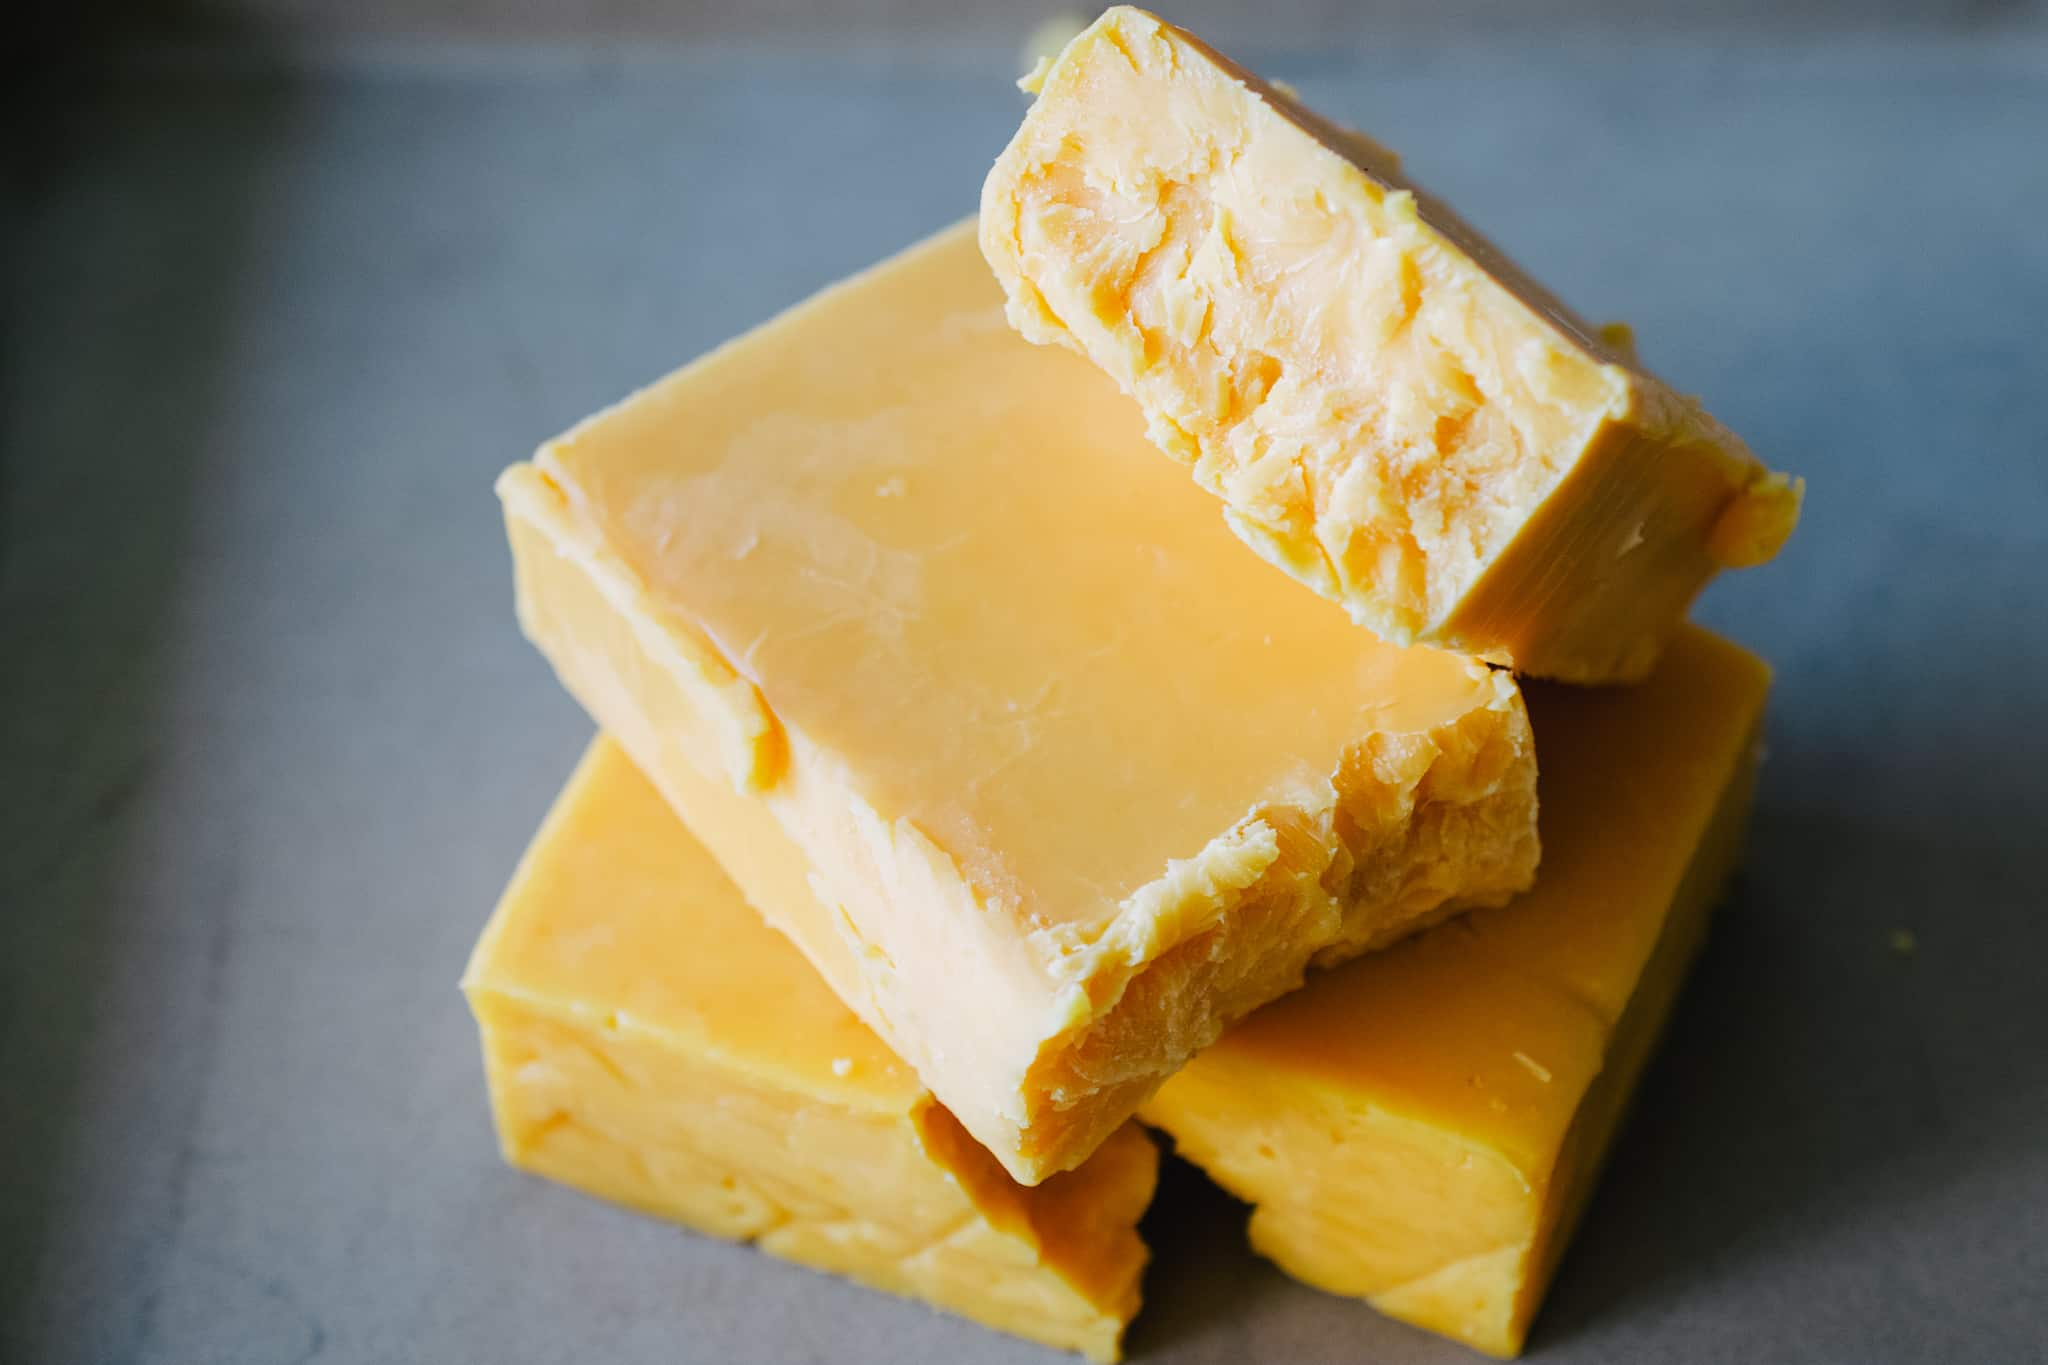 blocks of cheddar cheese